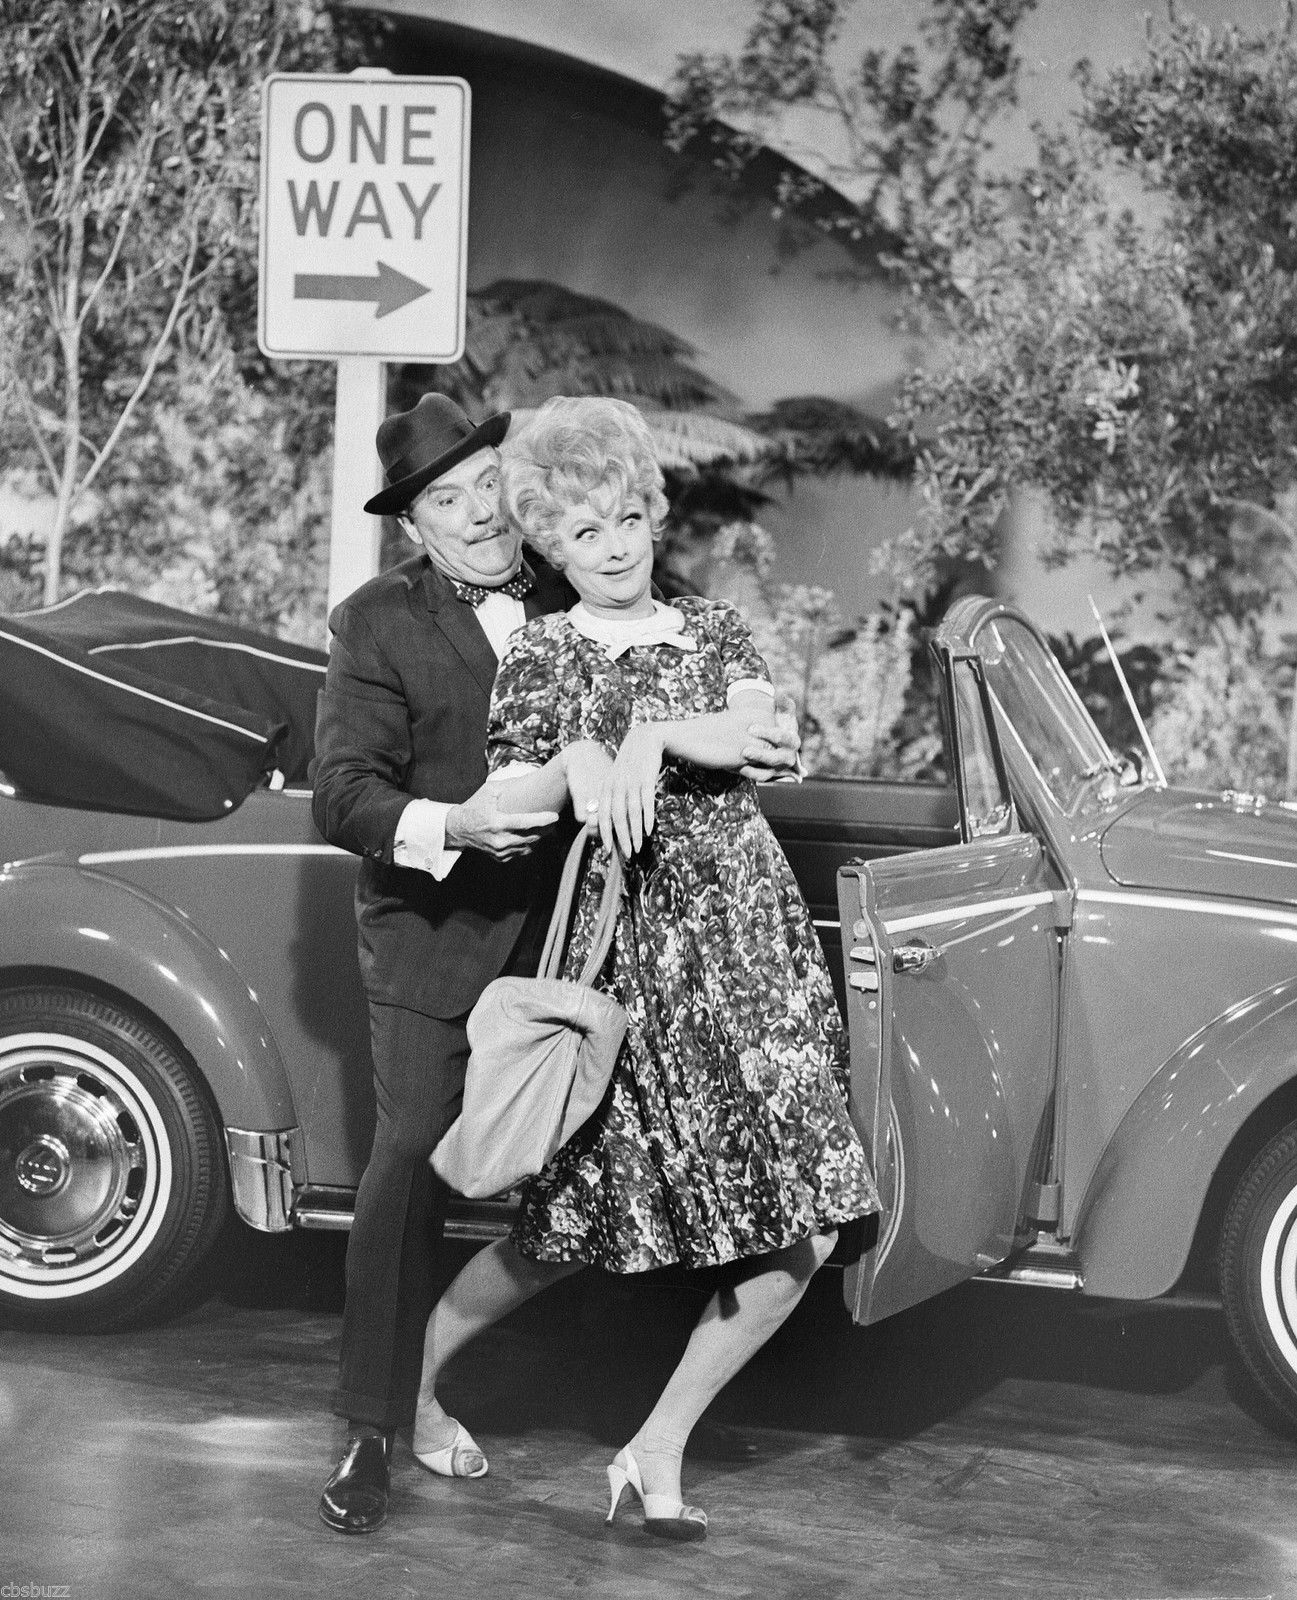 HE_LUCY_SHOW_-_TV_SHOW_PHOTO_51